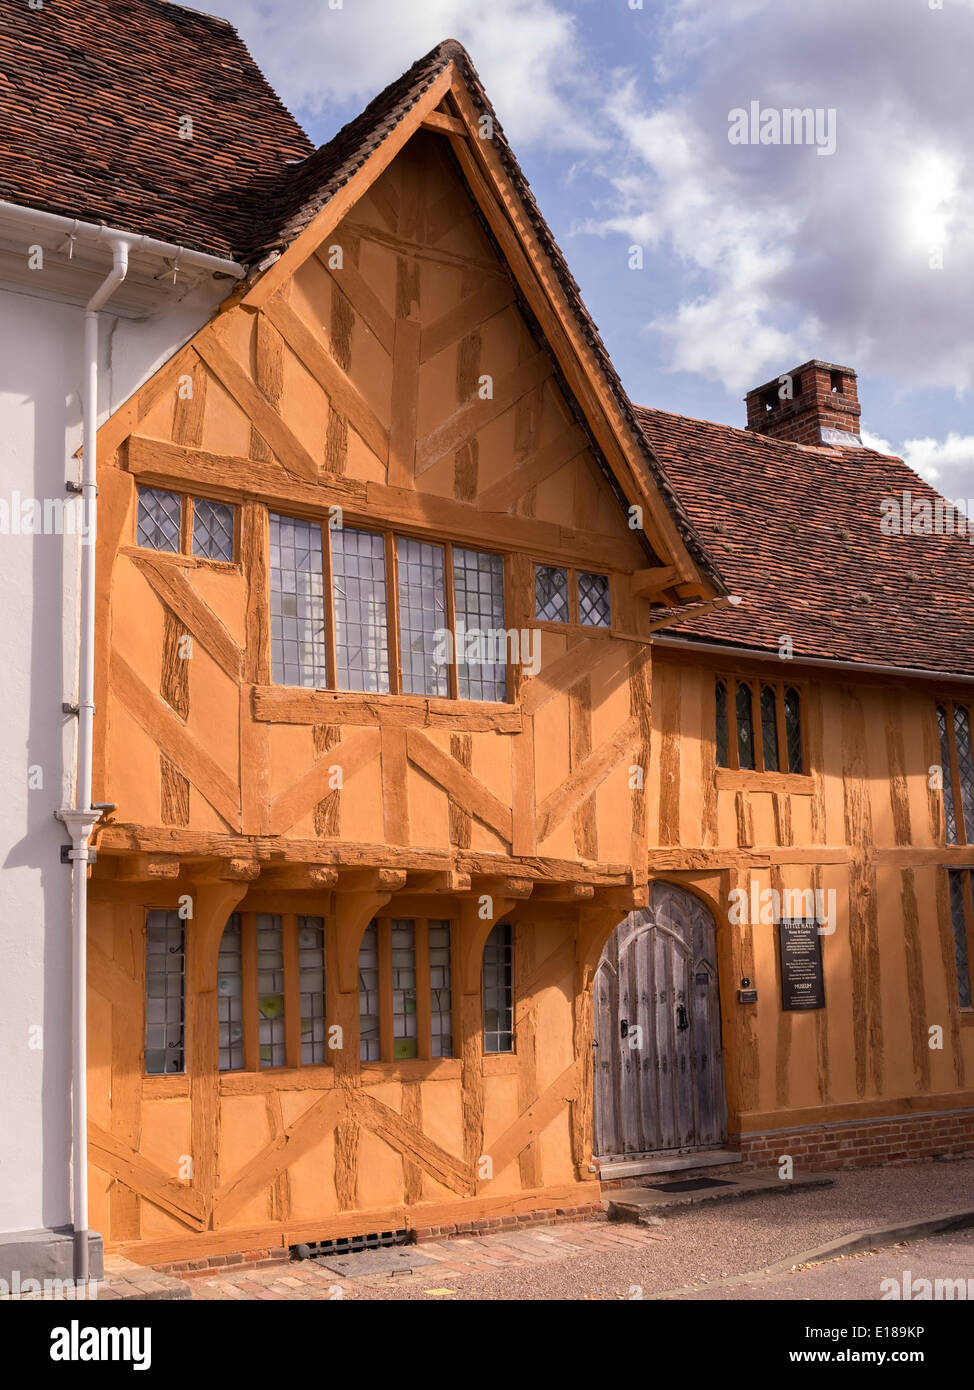 Old Medieval half timbered oak post and beam house of Little Hall, Lavenham, Suffolk, England, UK - Stock Image